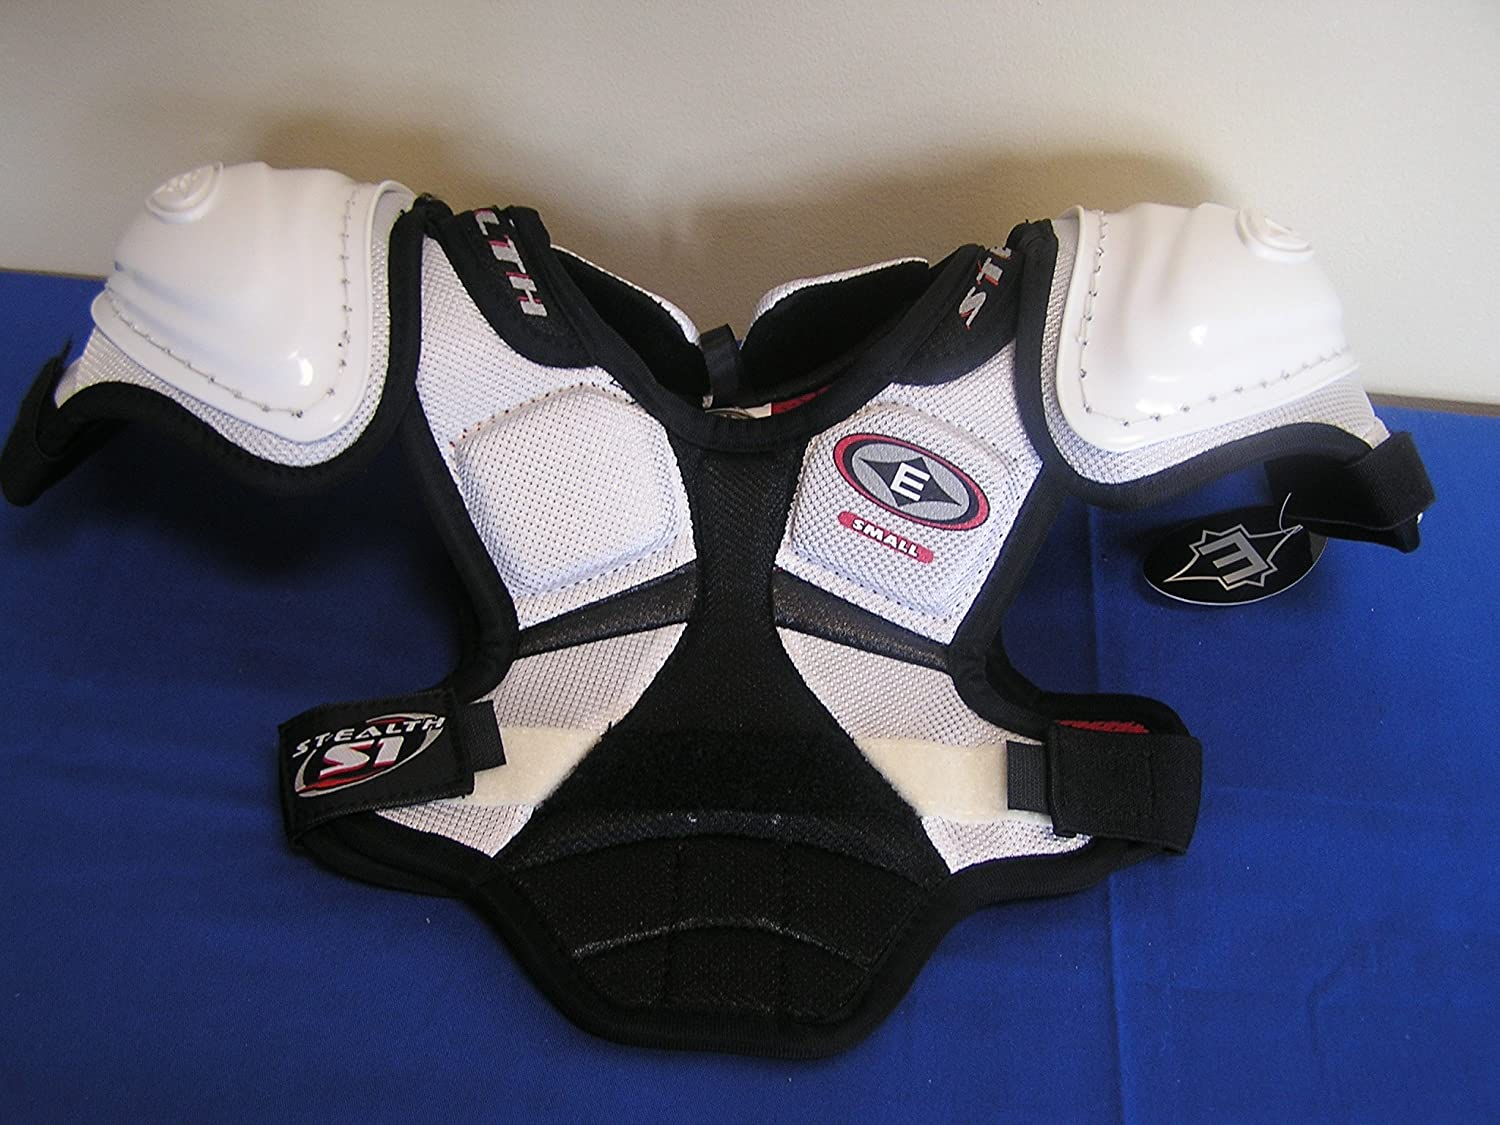 Easton Stealth S1 Youth Hockey Shoulder Pads Size Small : Field Hockey Protective Gear : Sports & Outdoors